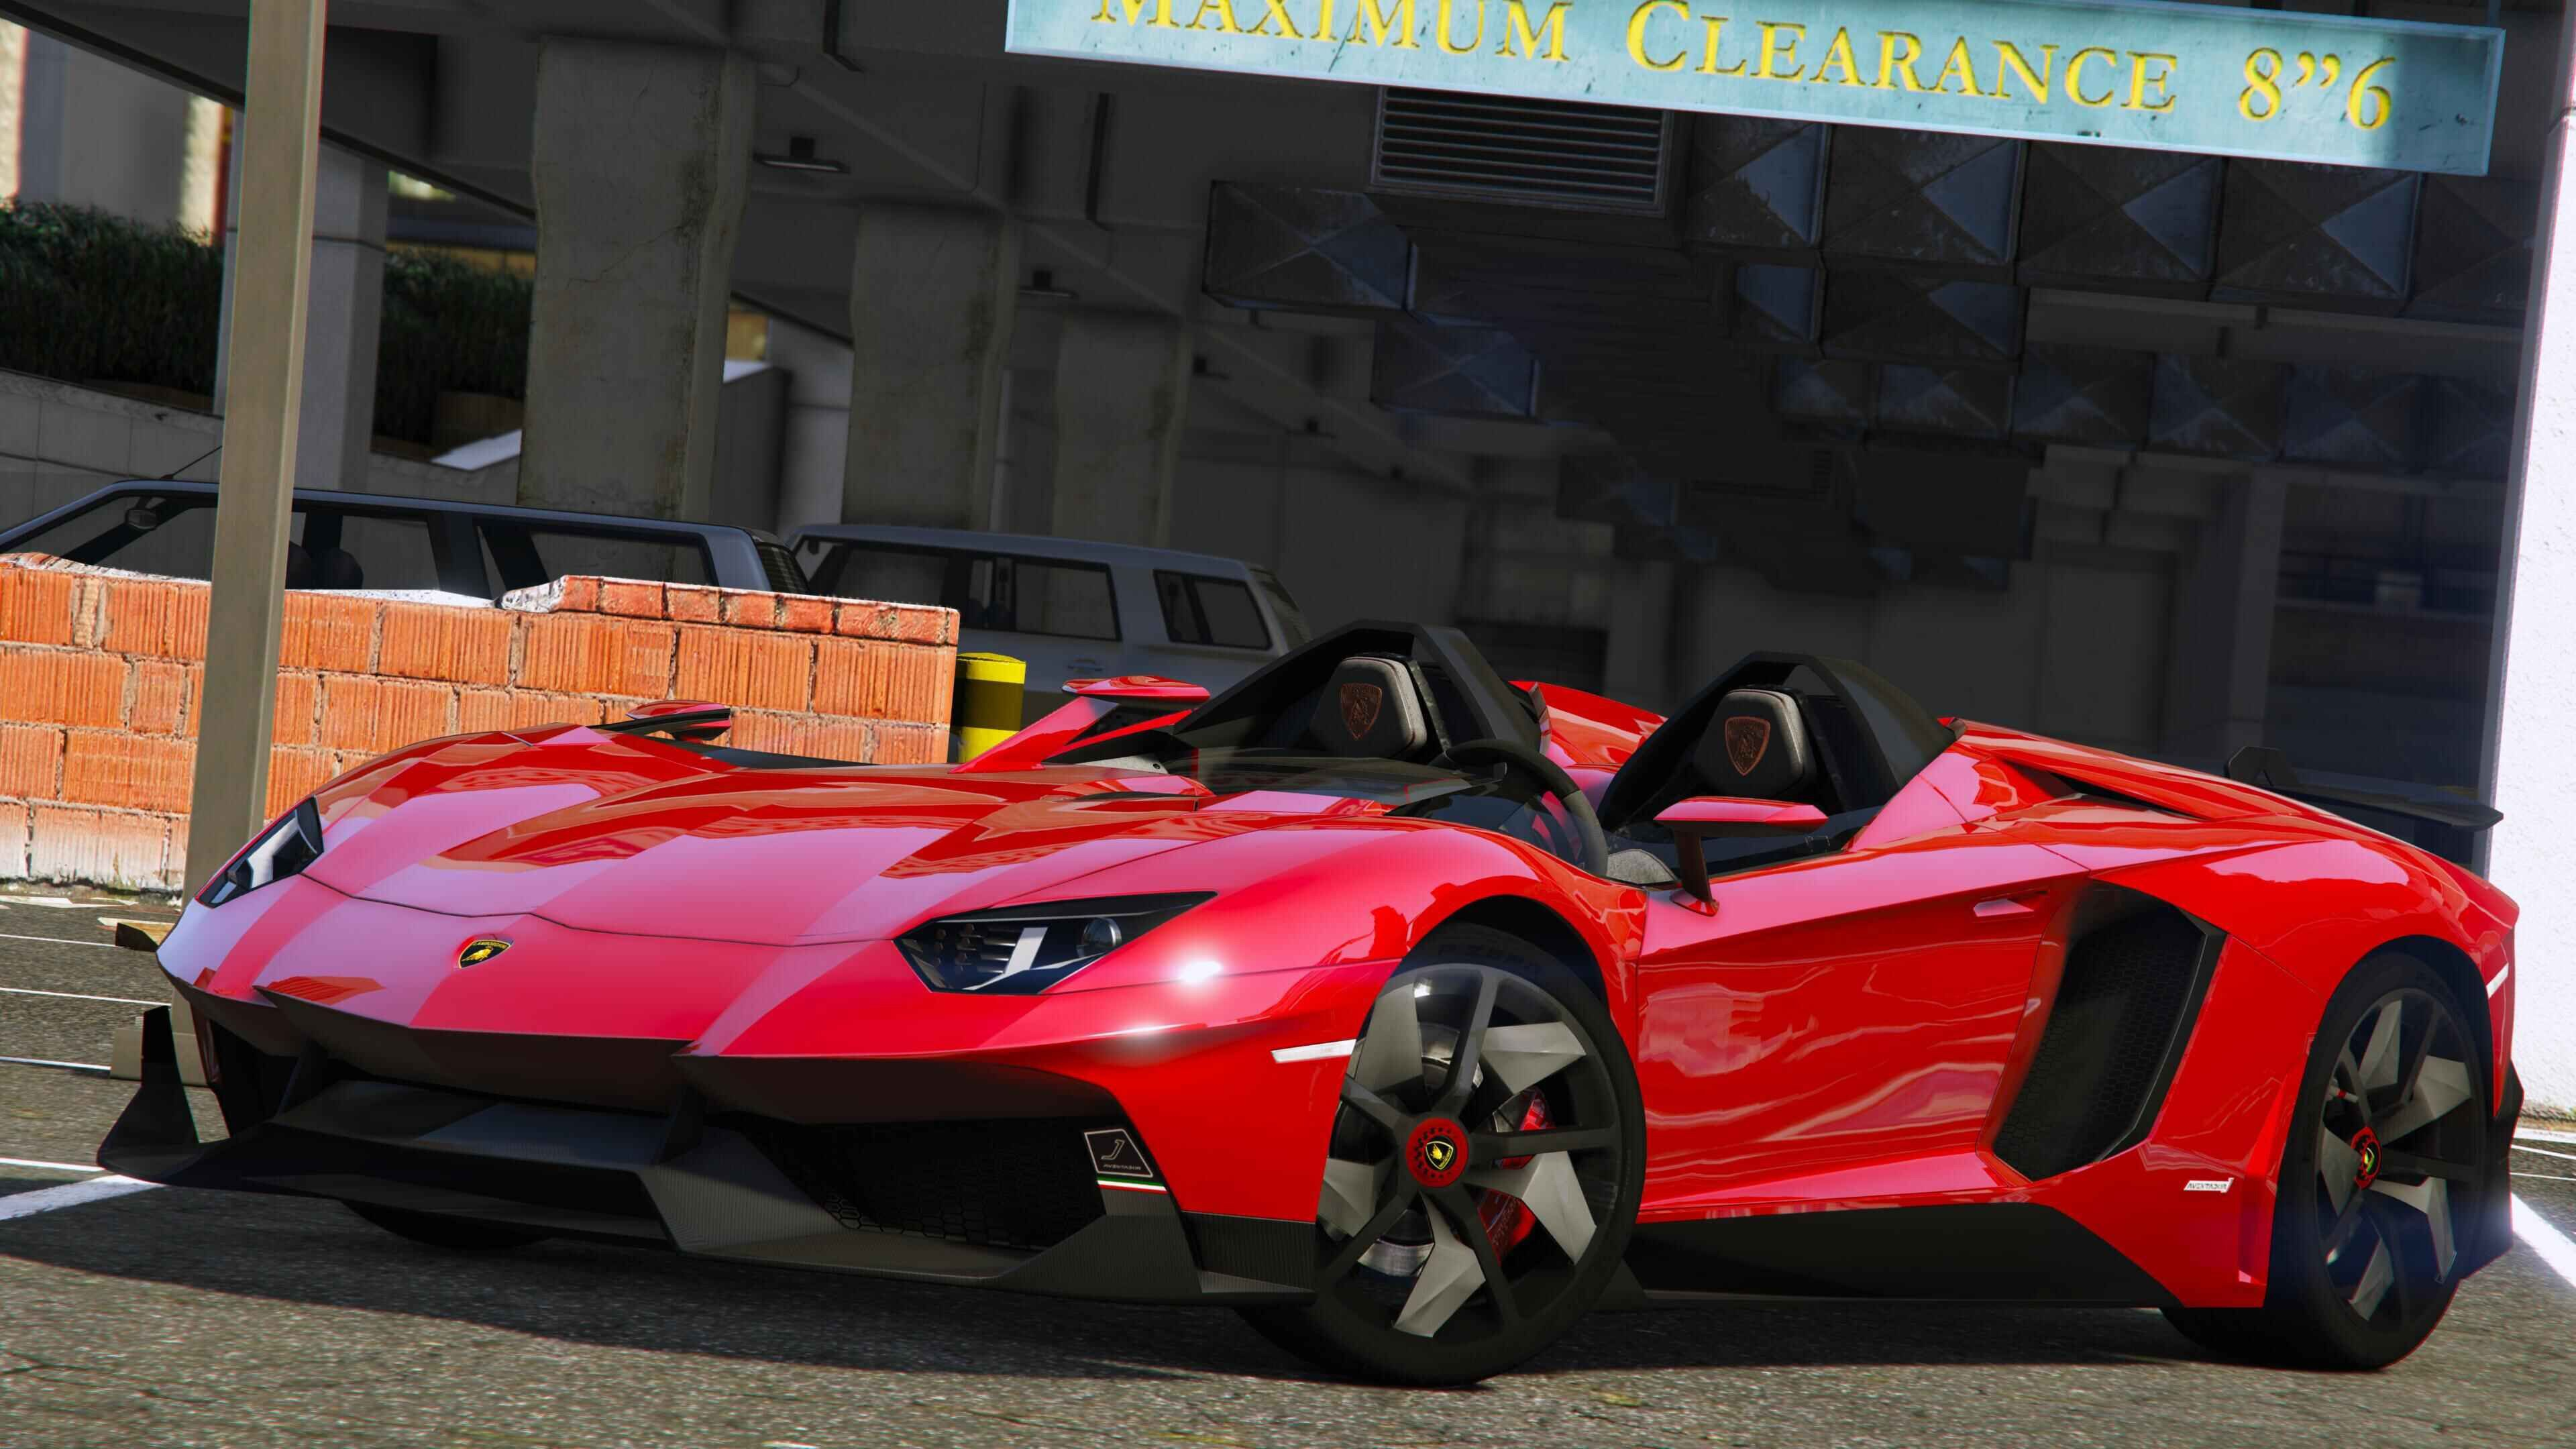 2012 Lamborghini Aventador J Speedster [Add-On] - GTA5 ...